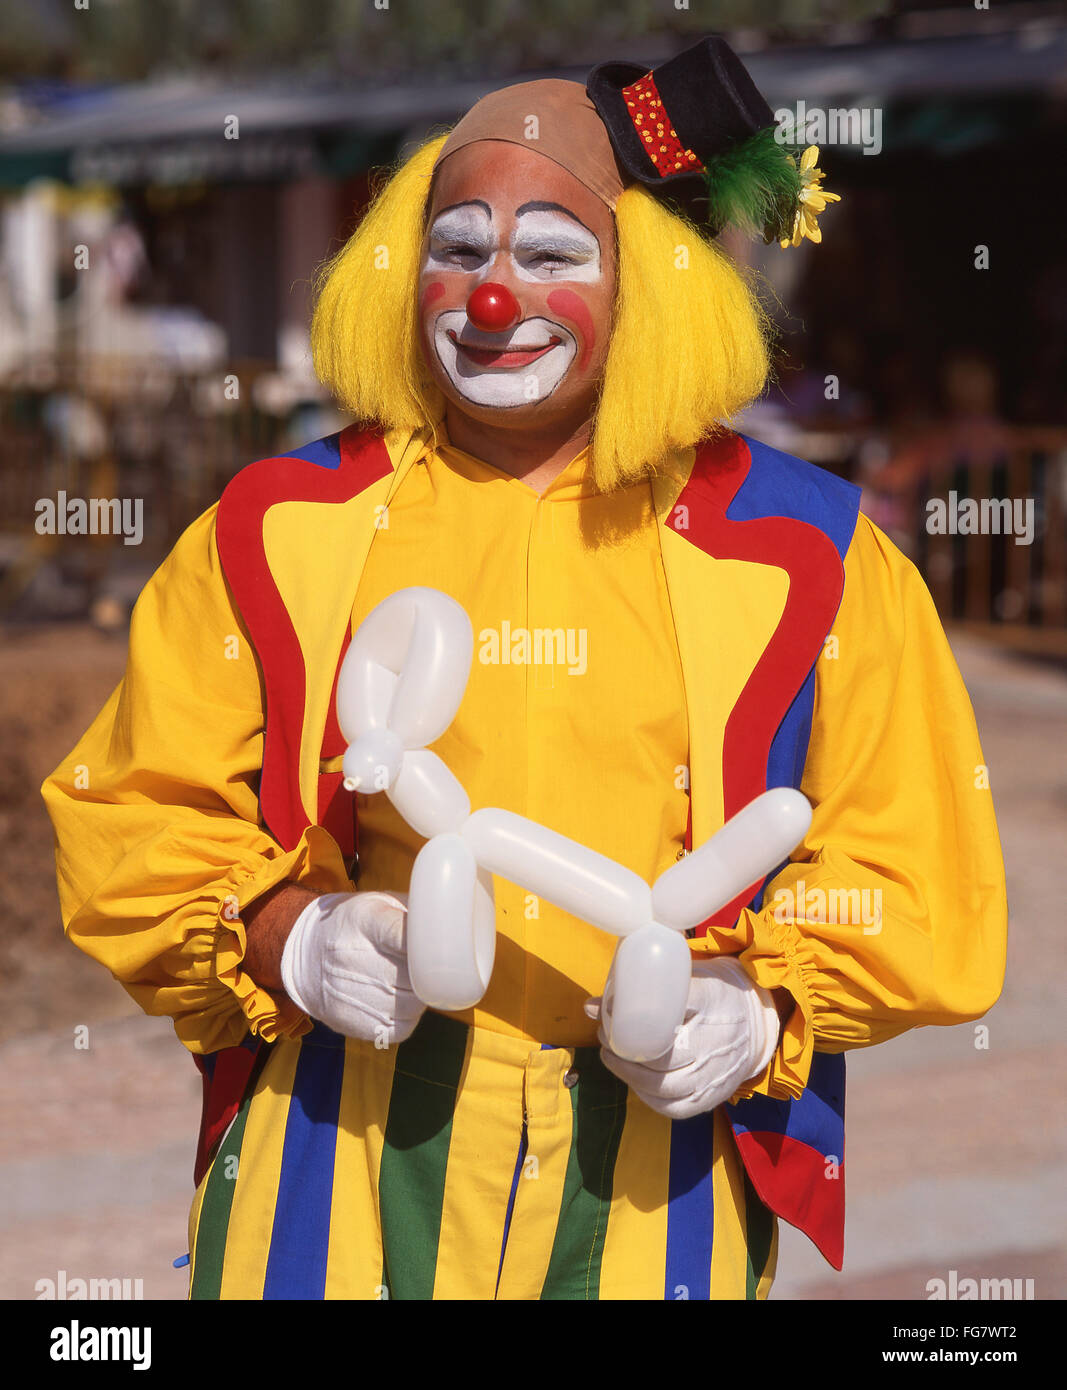 Colourful clown holding modeled balloon, Berkshire, England, United Kingdom - Stock Image